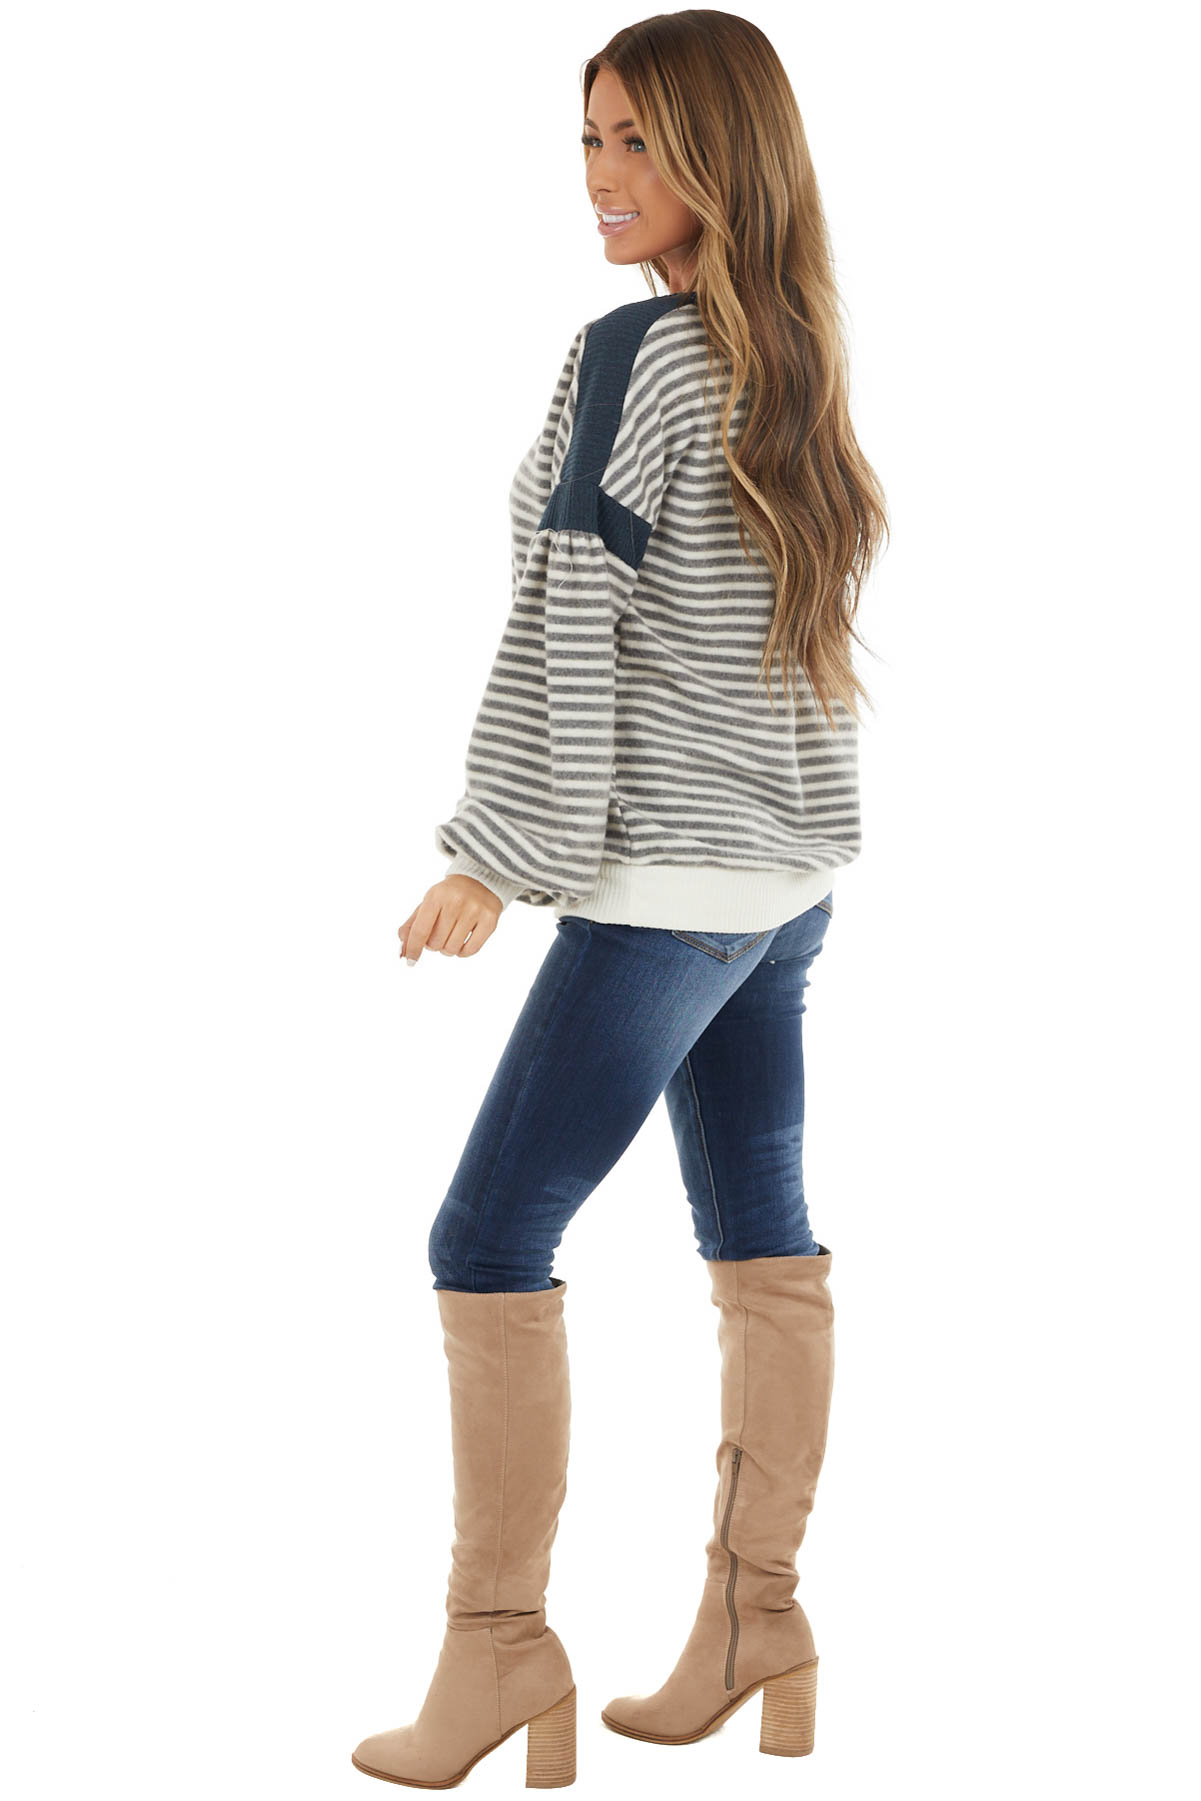 Stone and Cream Striped Fleece Knit Top with Bubble Sleeves